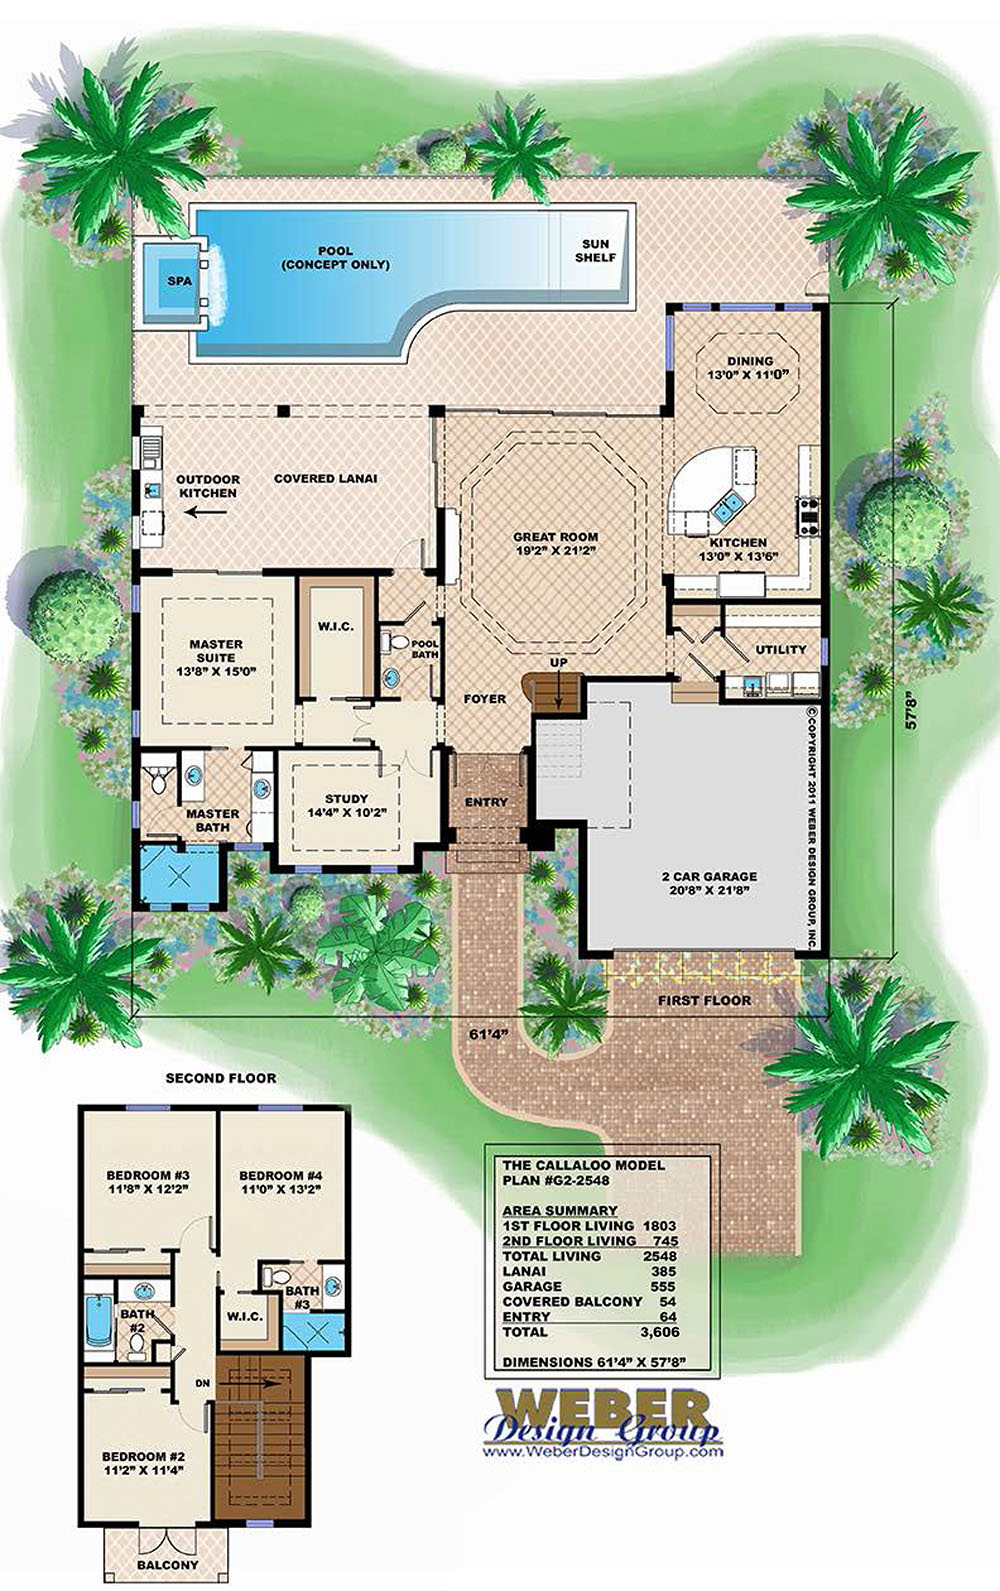 Beach House Plan: Contemporary West Ins Beach Home Floor Plan on texas home illustrations, texas home builders, texas gifts, texas home policy, texas home drawing, one story 3000 sq ft. house plans, texas home views, texas rock homes, unique house plans, jimmy jacobs custom house plans, southern living stonebridge cottage house plans, texas home history, texas home decor, texas hill country modern rustic homes, texas building, courtyard house plans, texas small homes, texas home facades, texas home ideas, garage plans with porte cochere house plans,